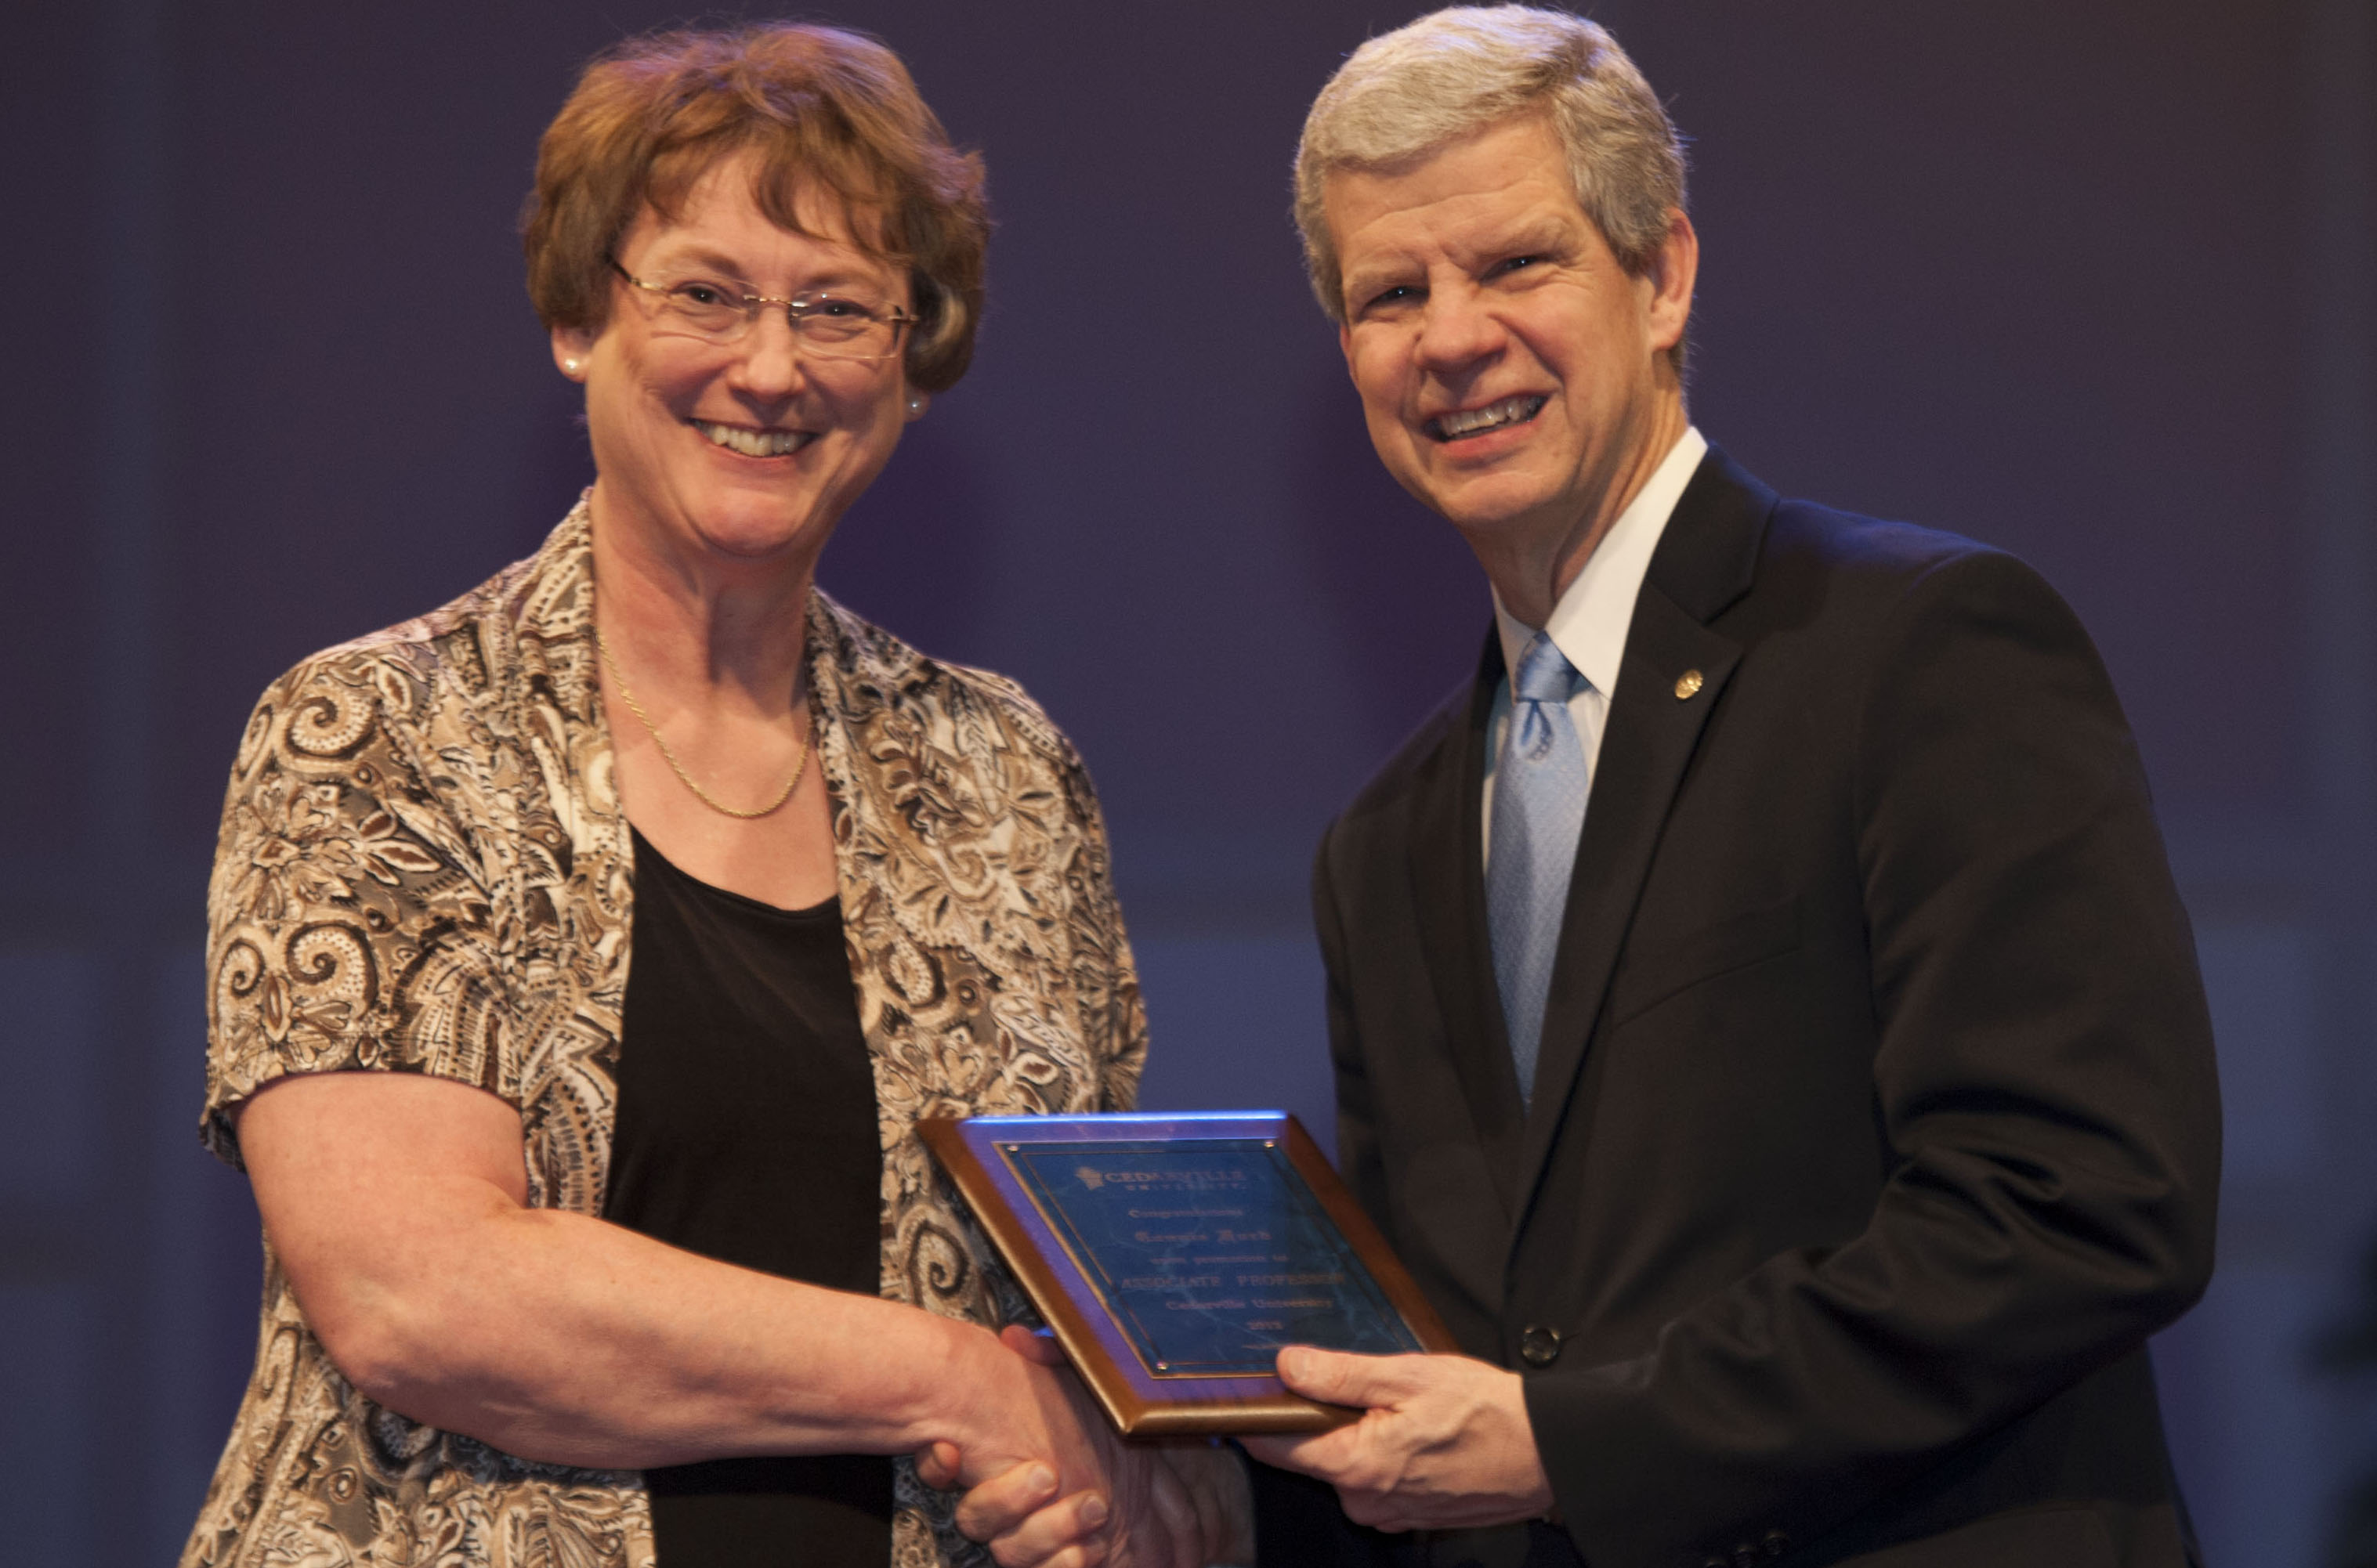 Connie Ford became a Certified Healthcare Simulation Educator (C.H.S.E.), which is recognition of expertise in the field of clinical simulations.